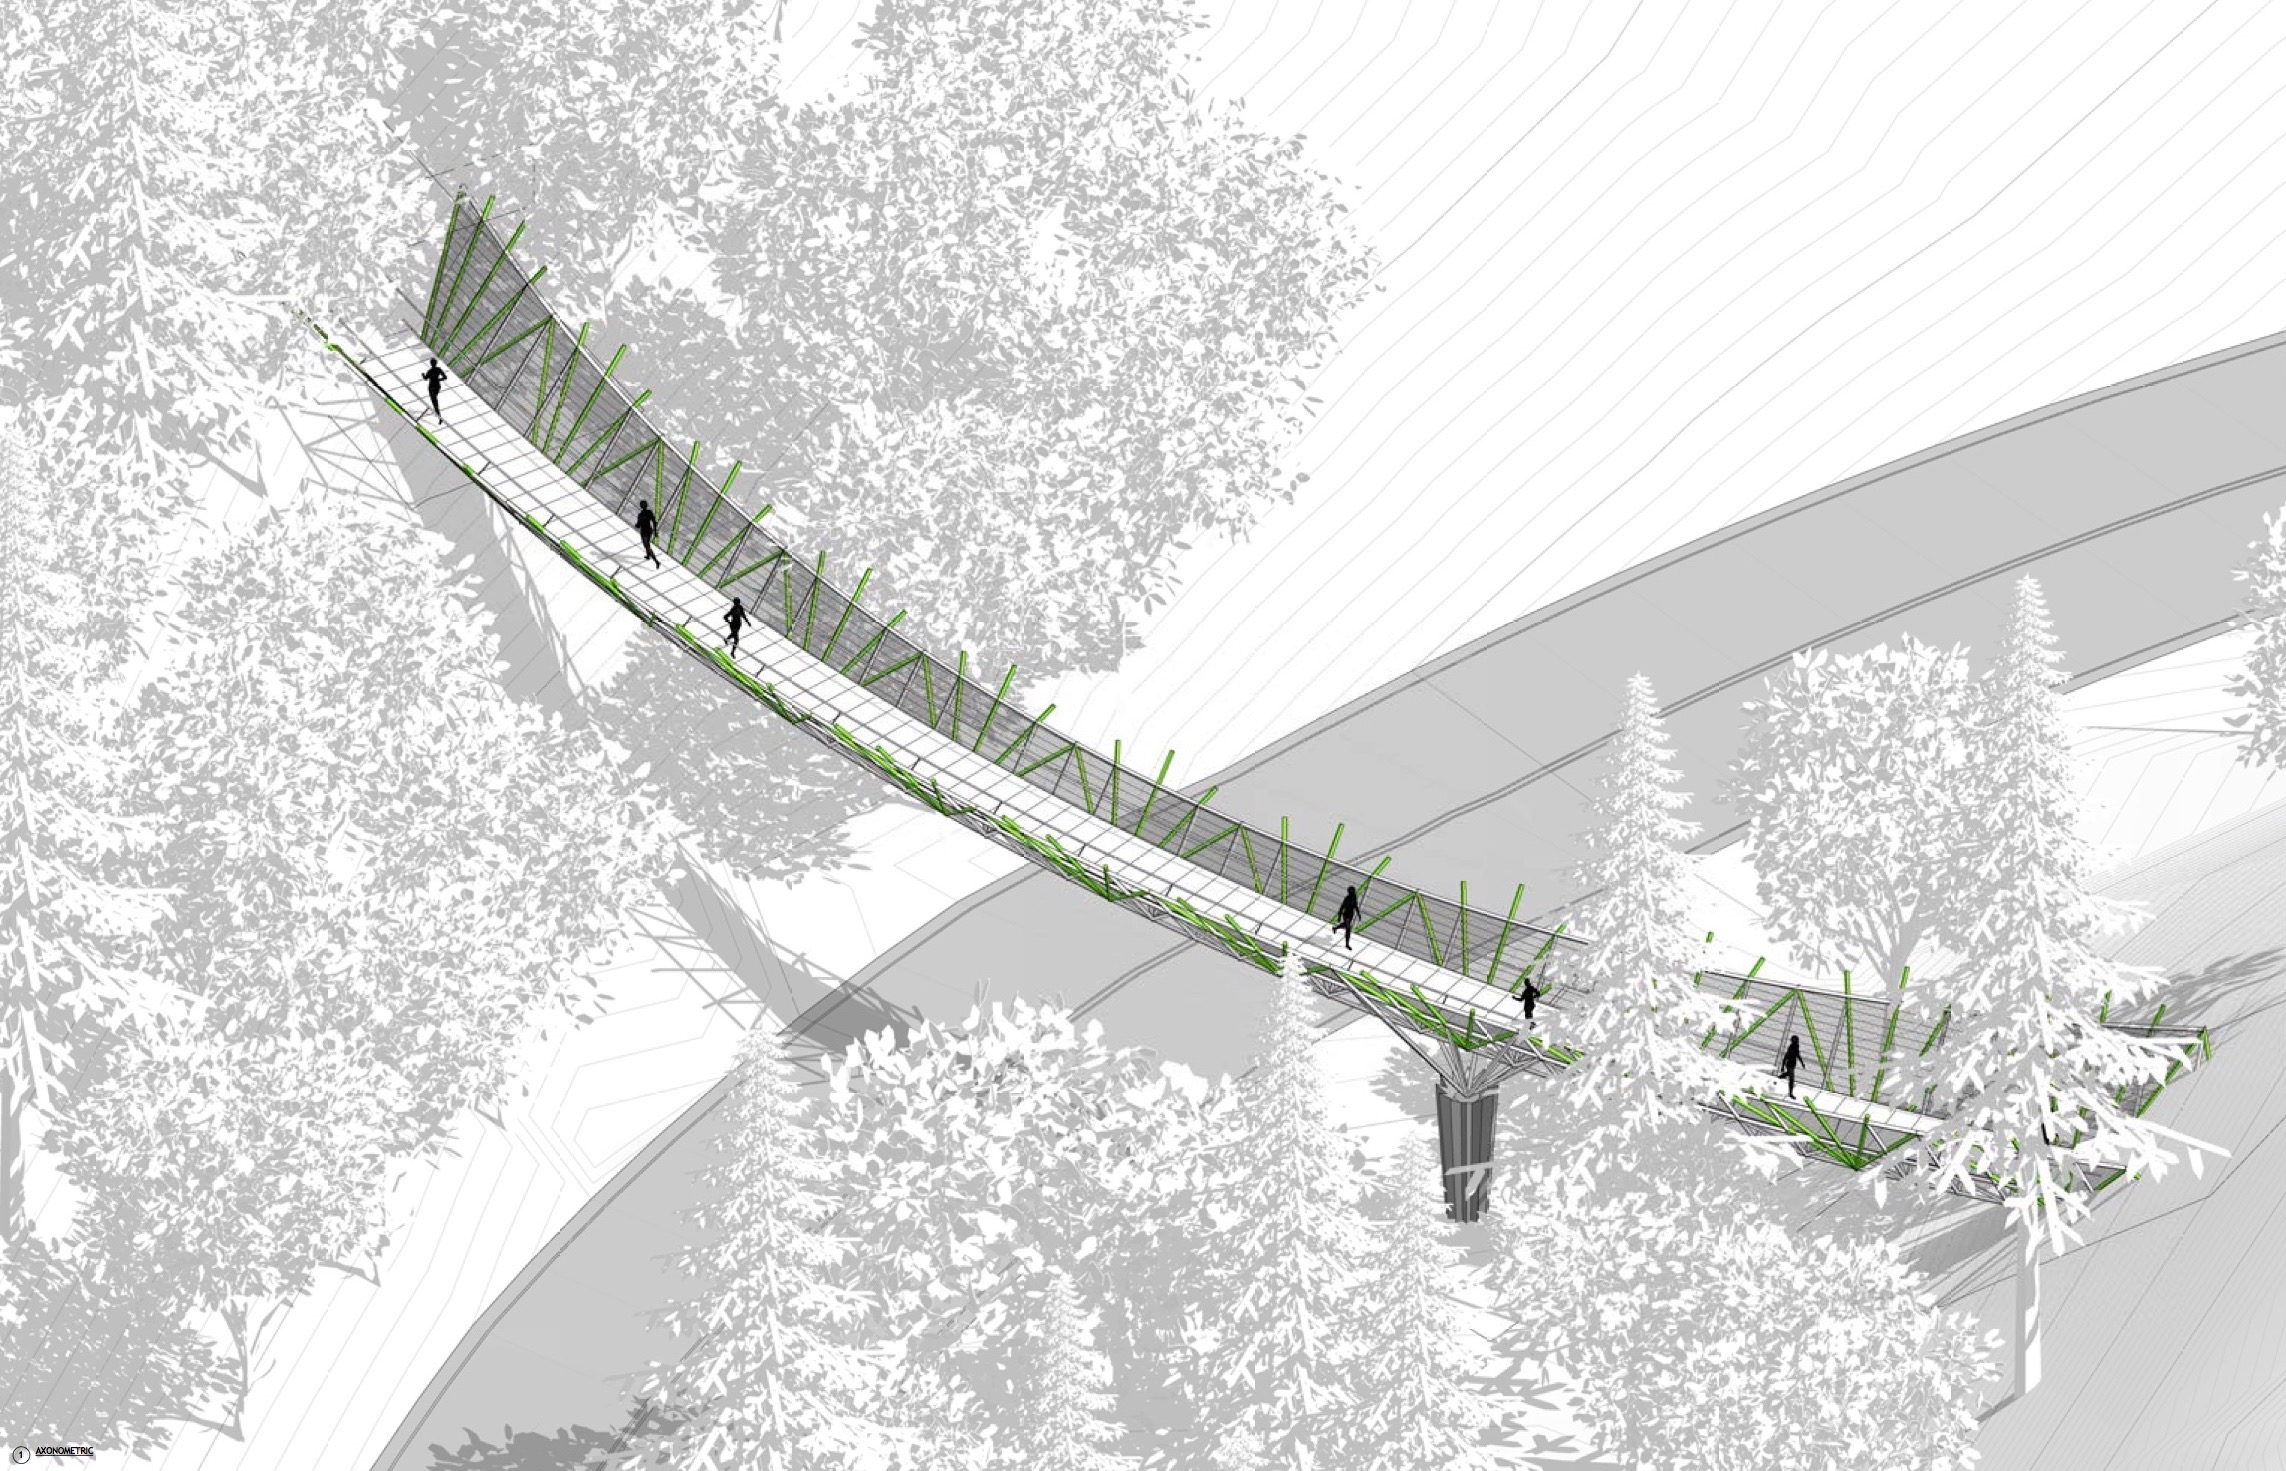 Designed by Ed Carpenter, a Pacific Northwest artist specializing in large-scale public installations, the Footbridge will mirror the natural elements around it, both blending in and connecting to its surroundings.